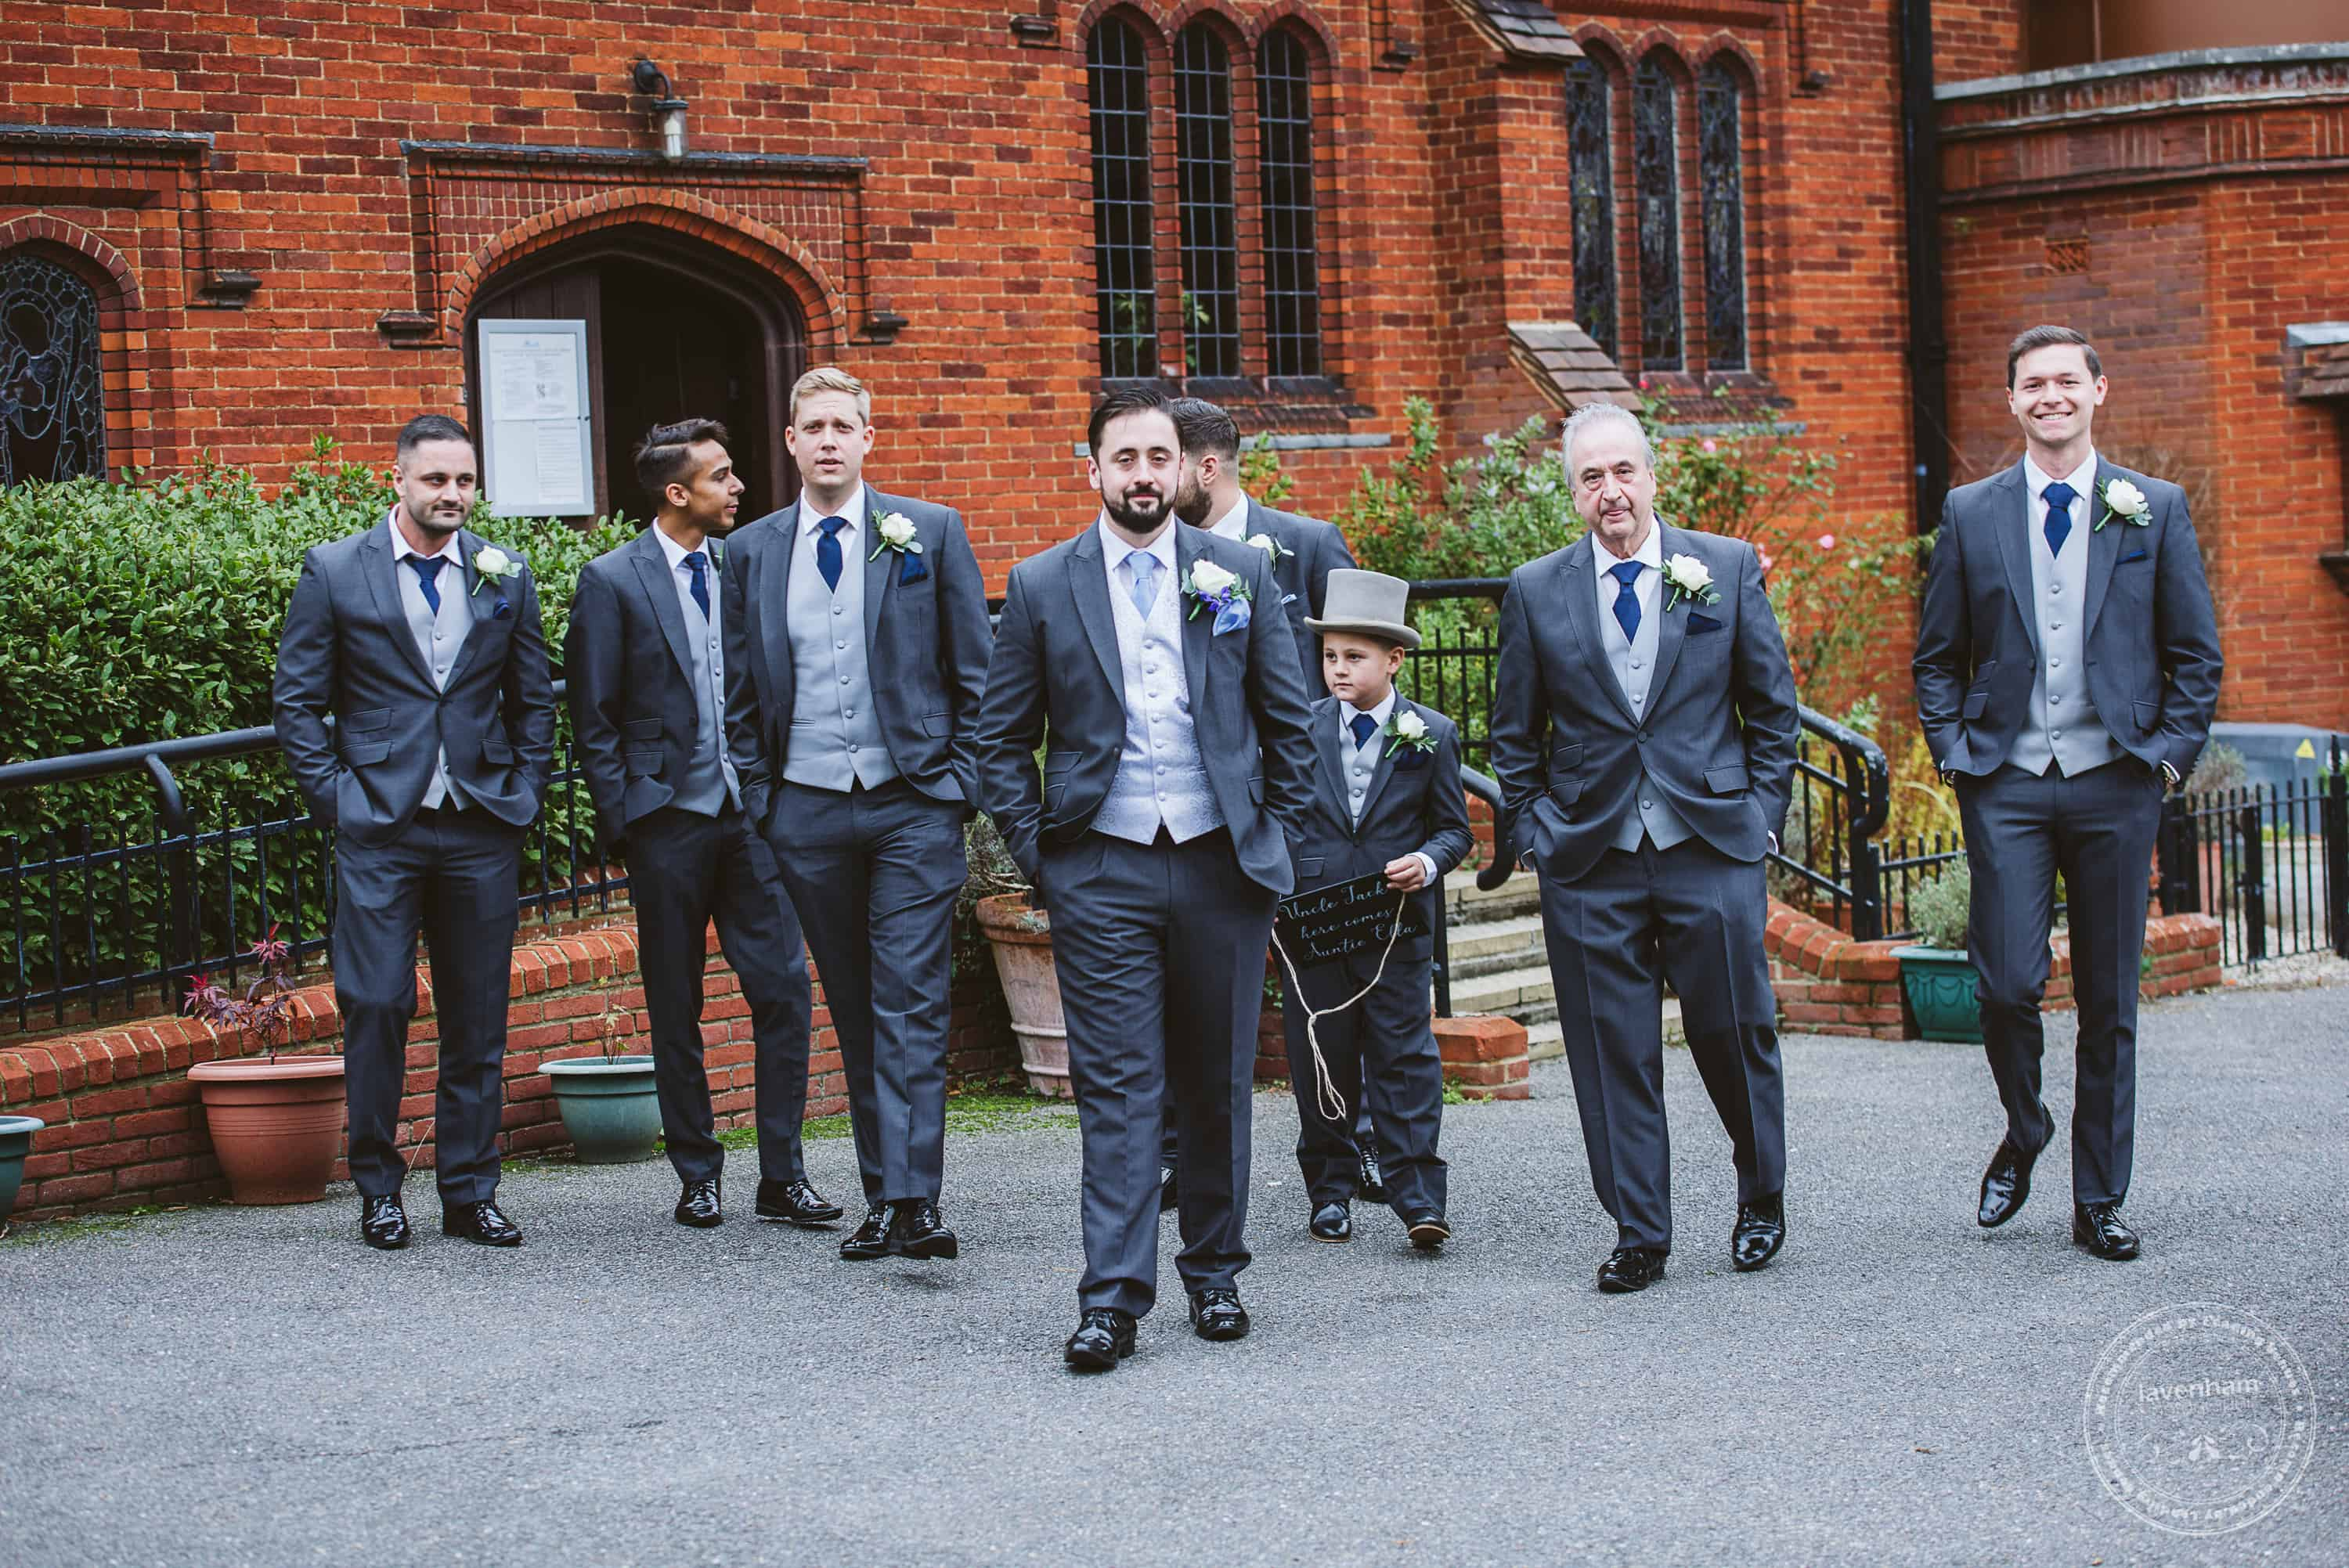 261019 Bull and Willow Room Essex Wedding Photographer 015